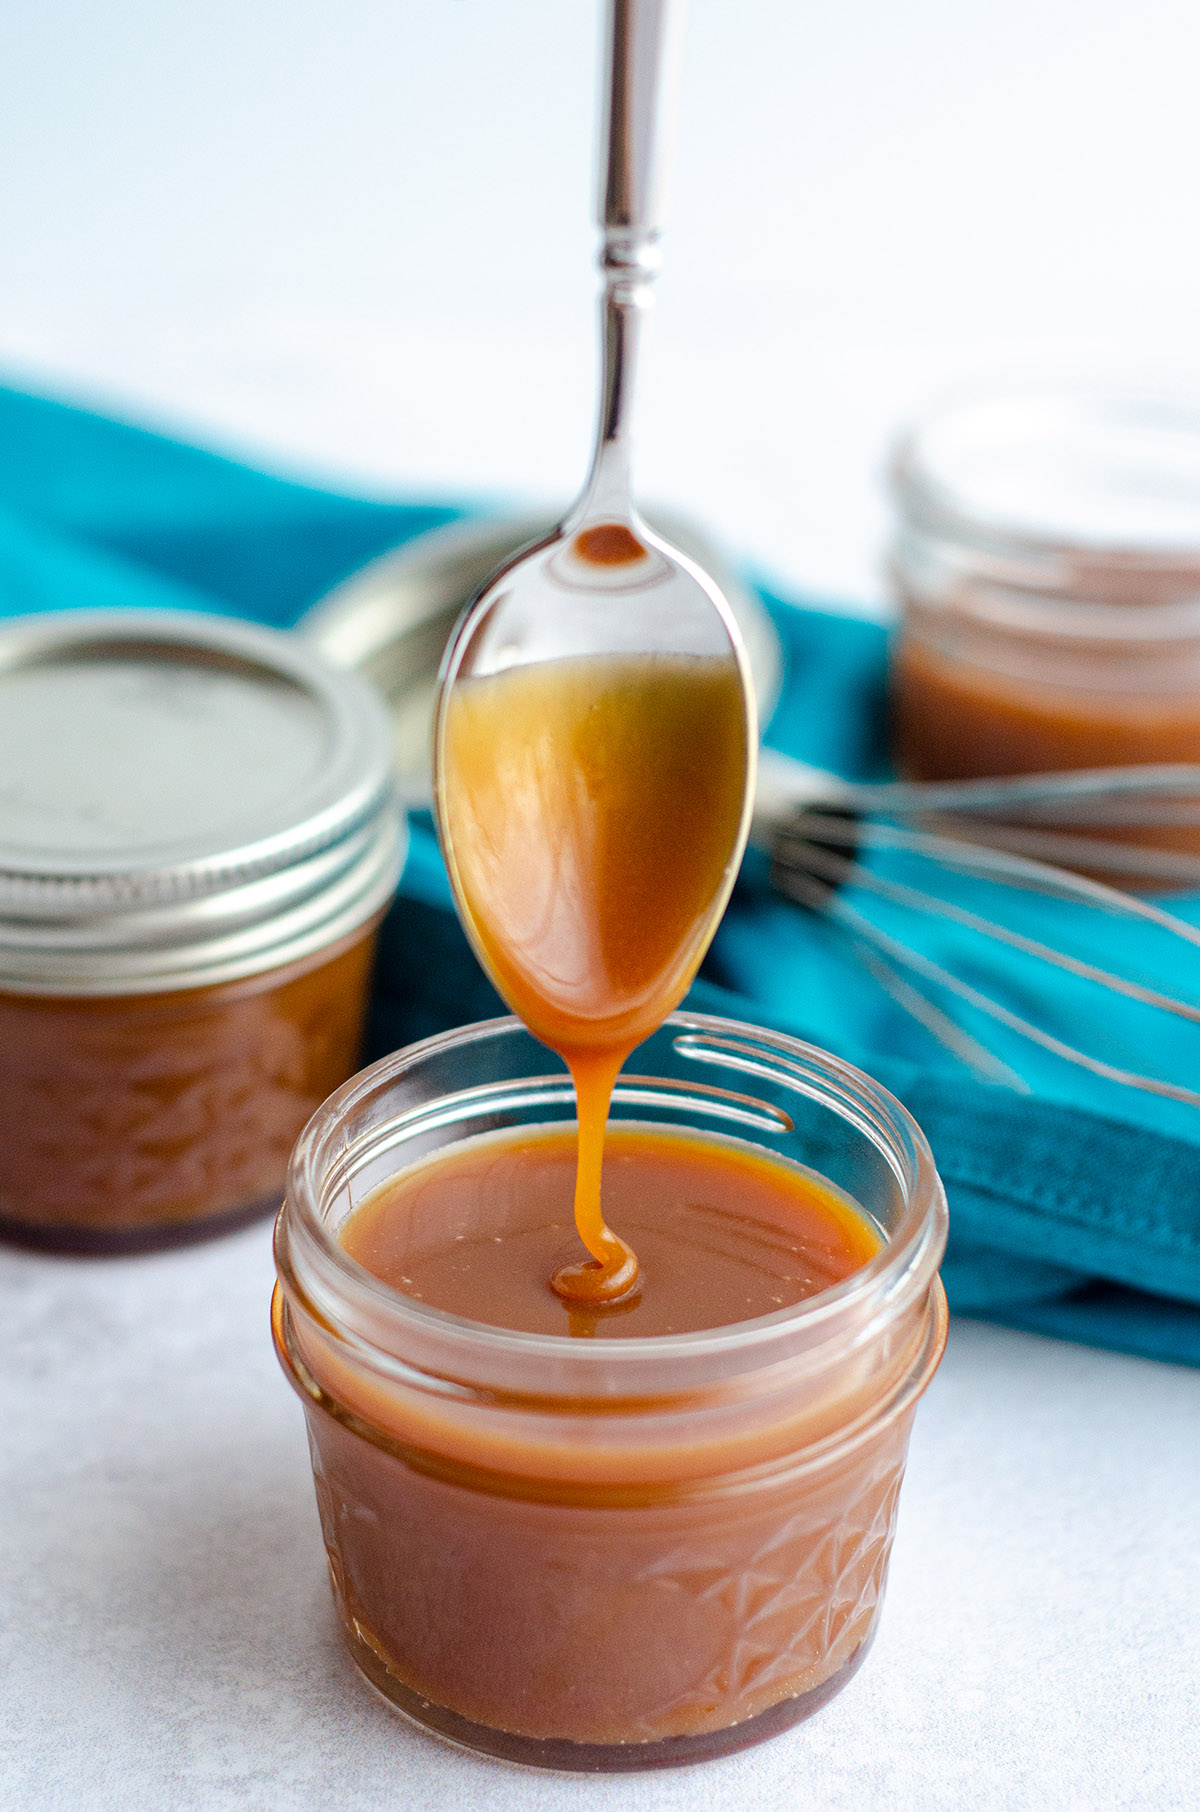 Learn to make your own salted caramel sauce at home. Add no bourbon or a lot of bourbon to make it something special!